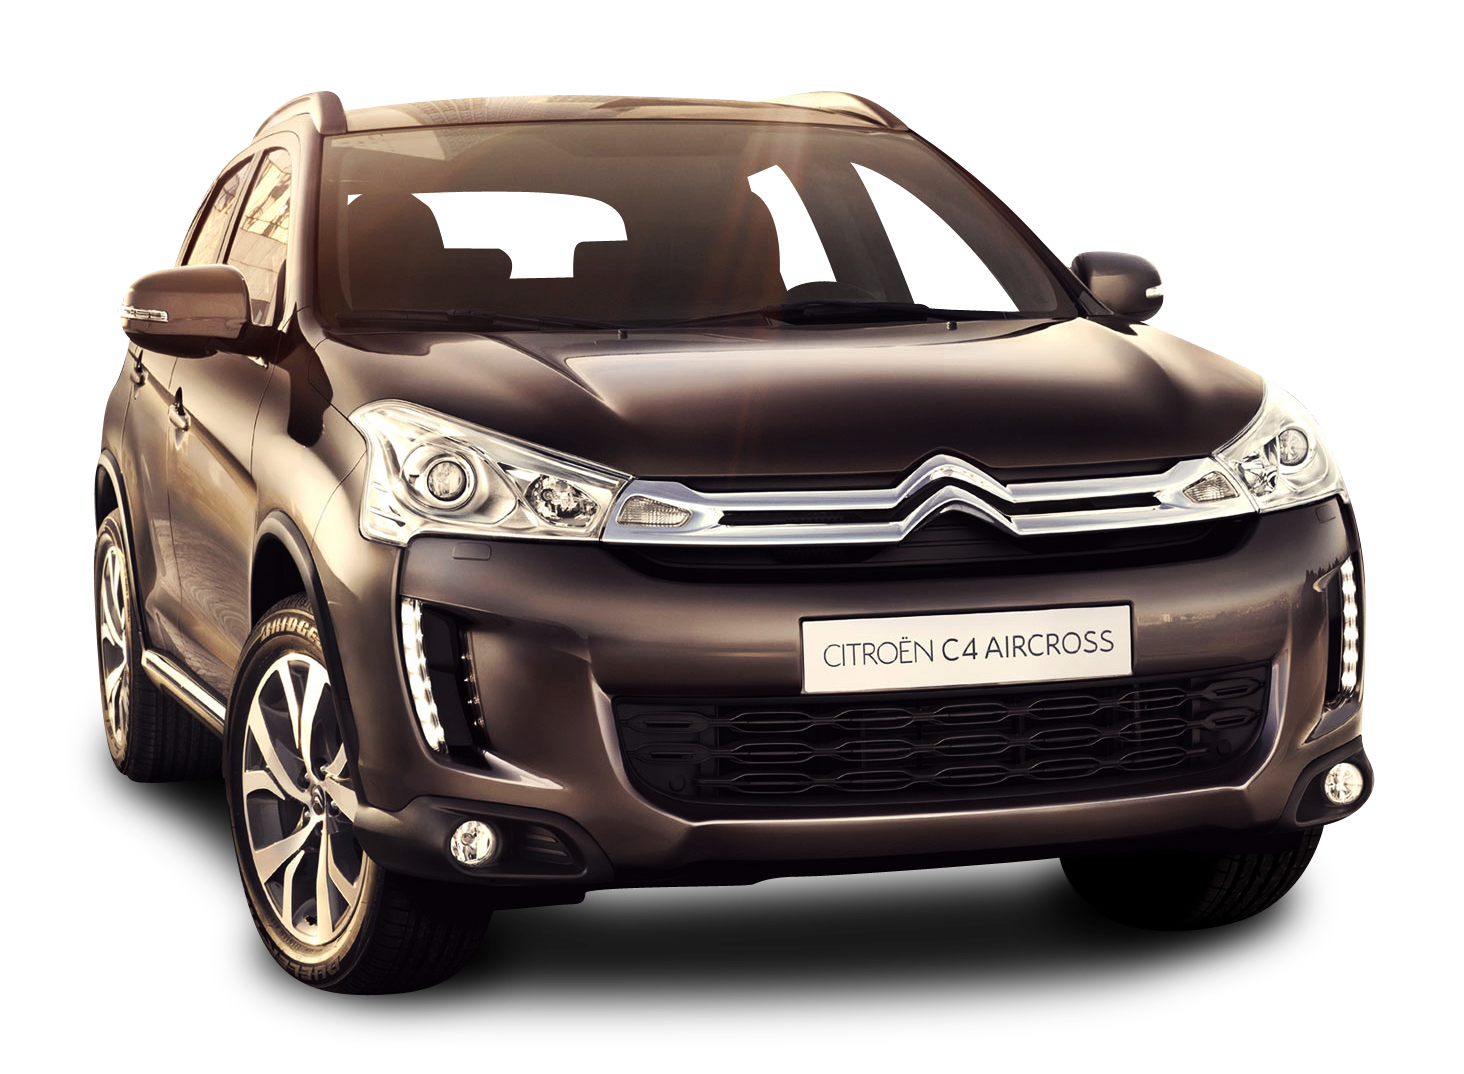 Black Citroen C4 Aircross Car